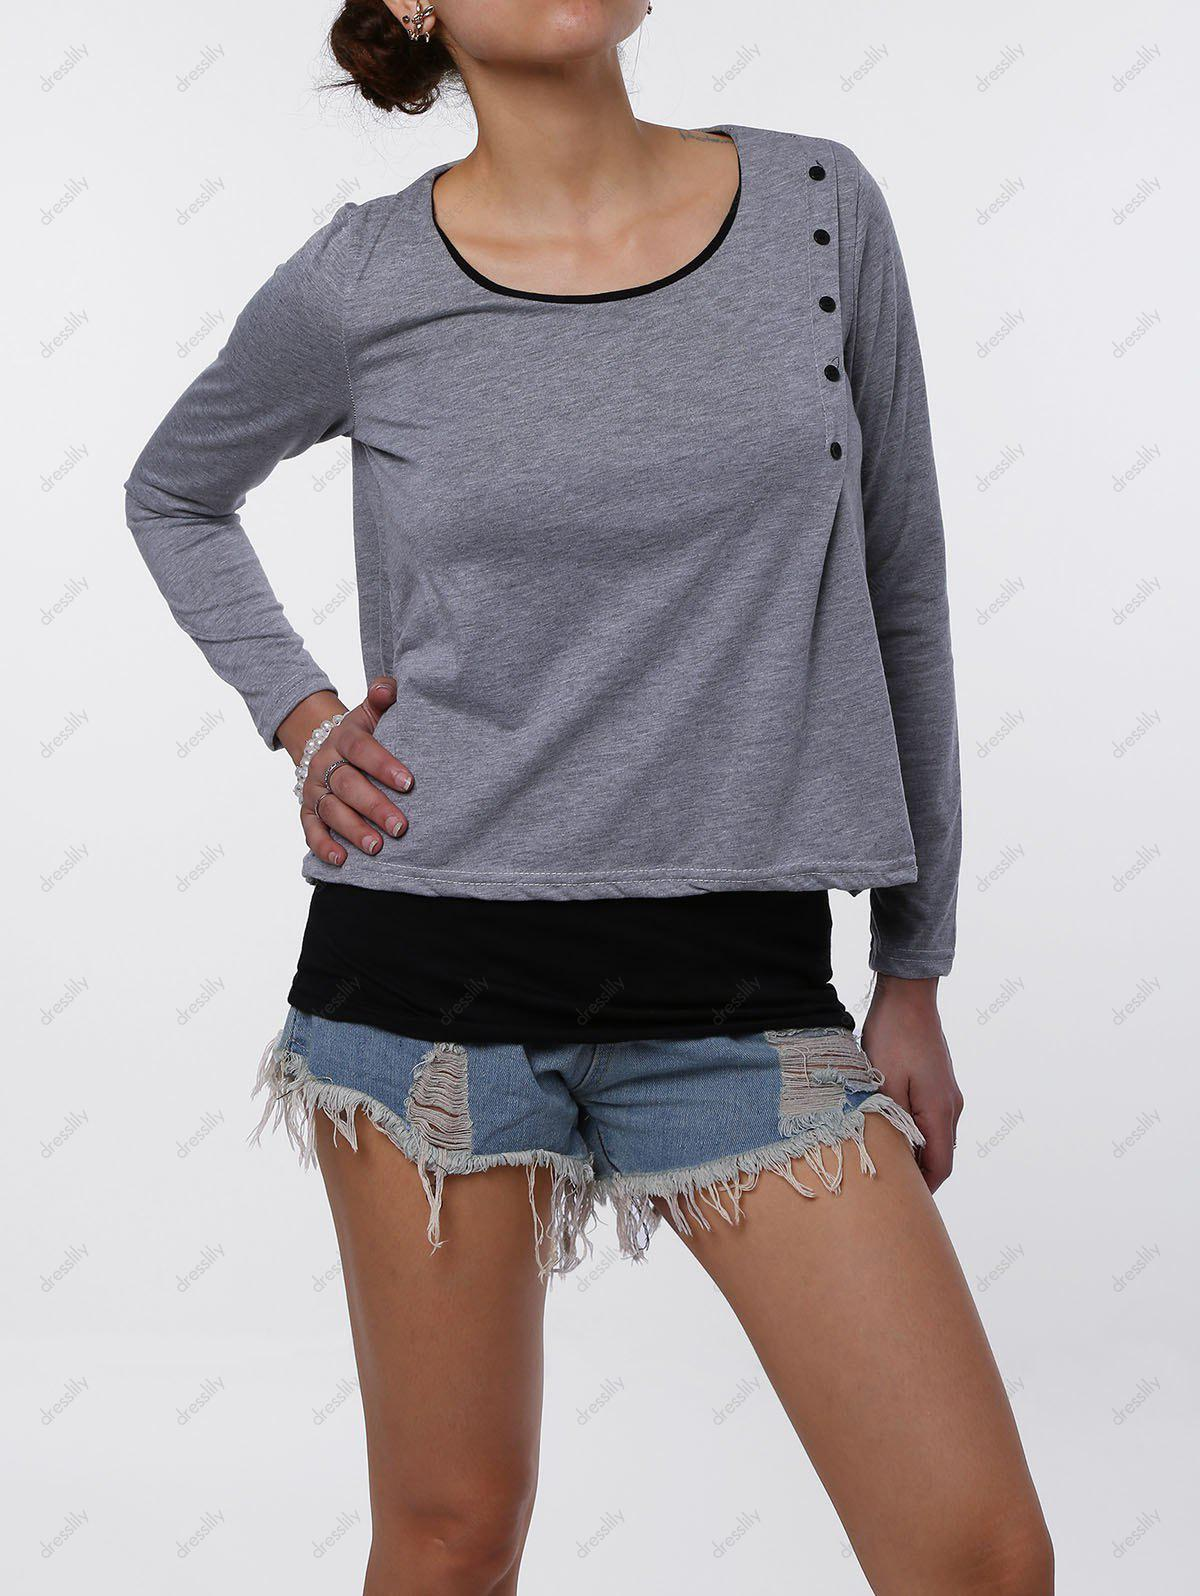 Stylish Faux Twinset Design Scoop Neck Long Sleeve T-Shirt For Women - LIGHT GRAY S